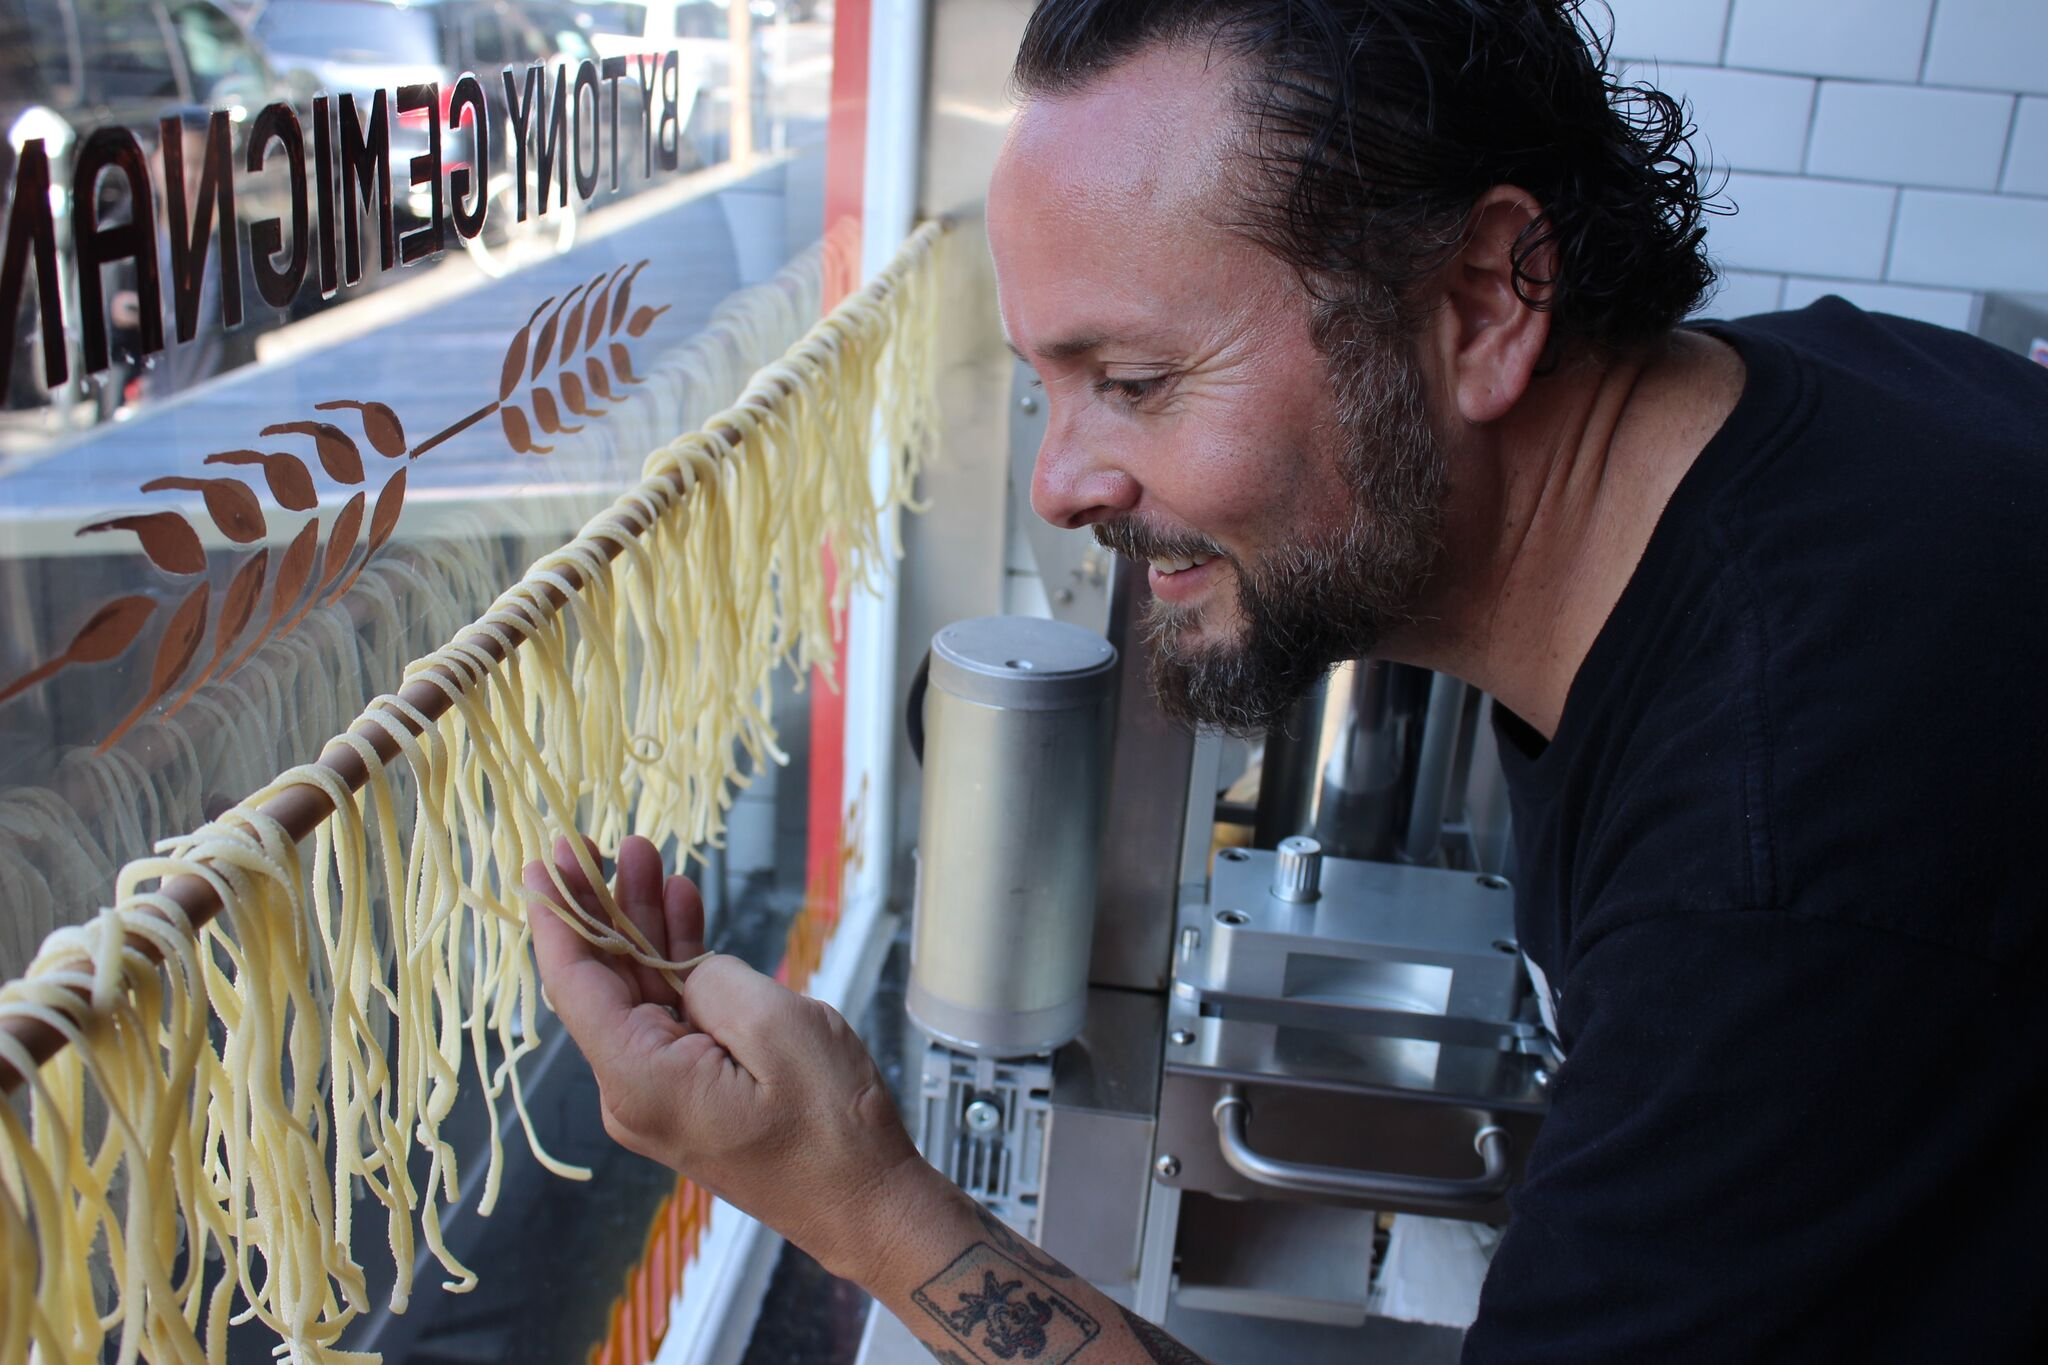 Gemignani checks on the drying pasta